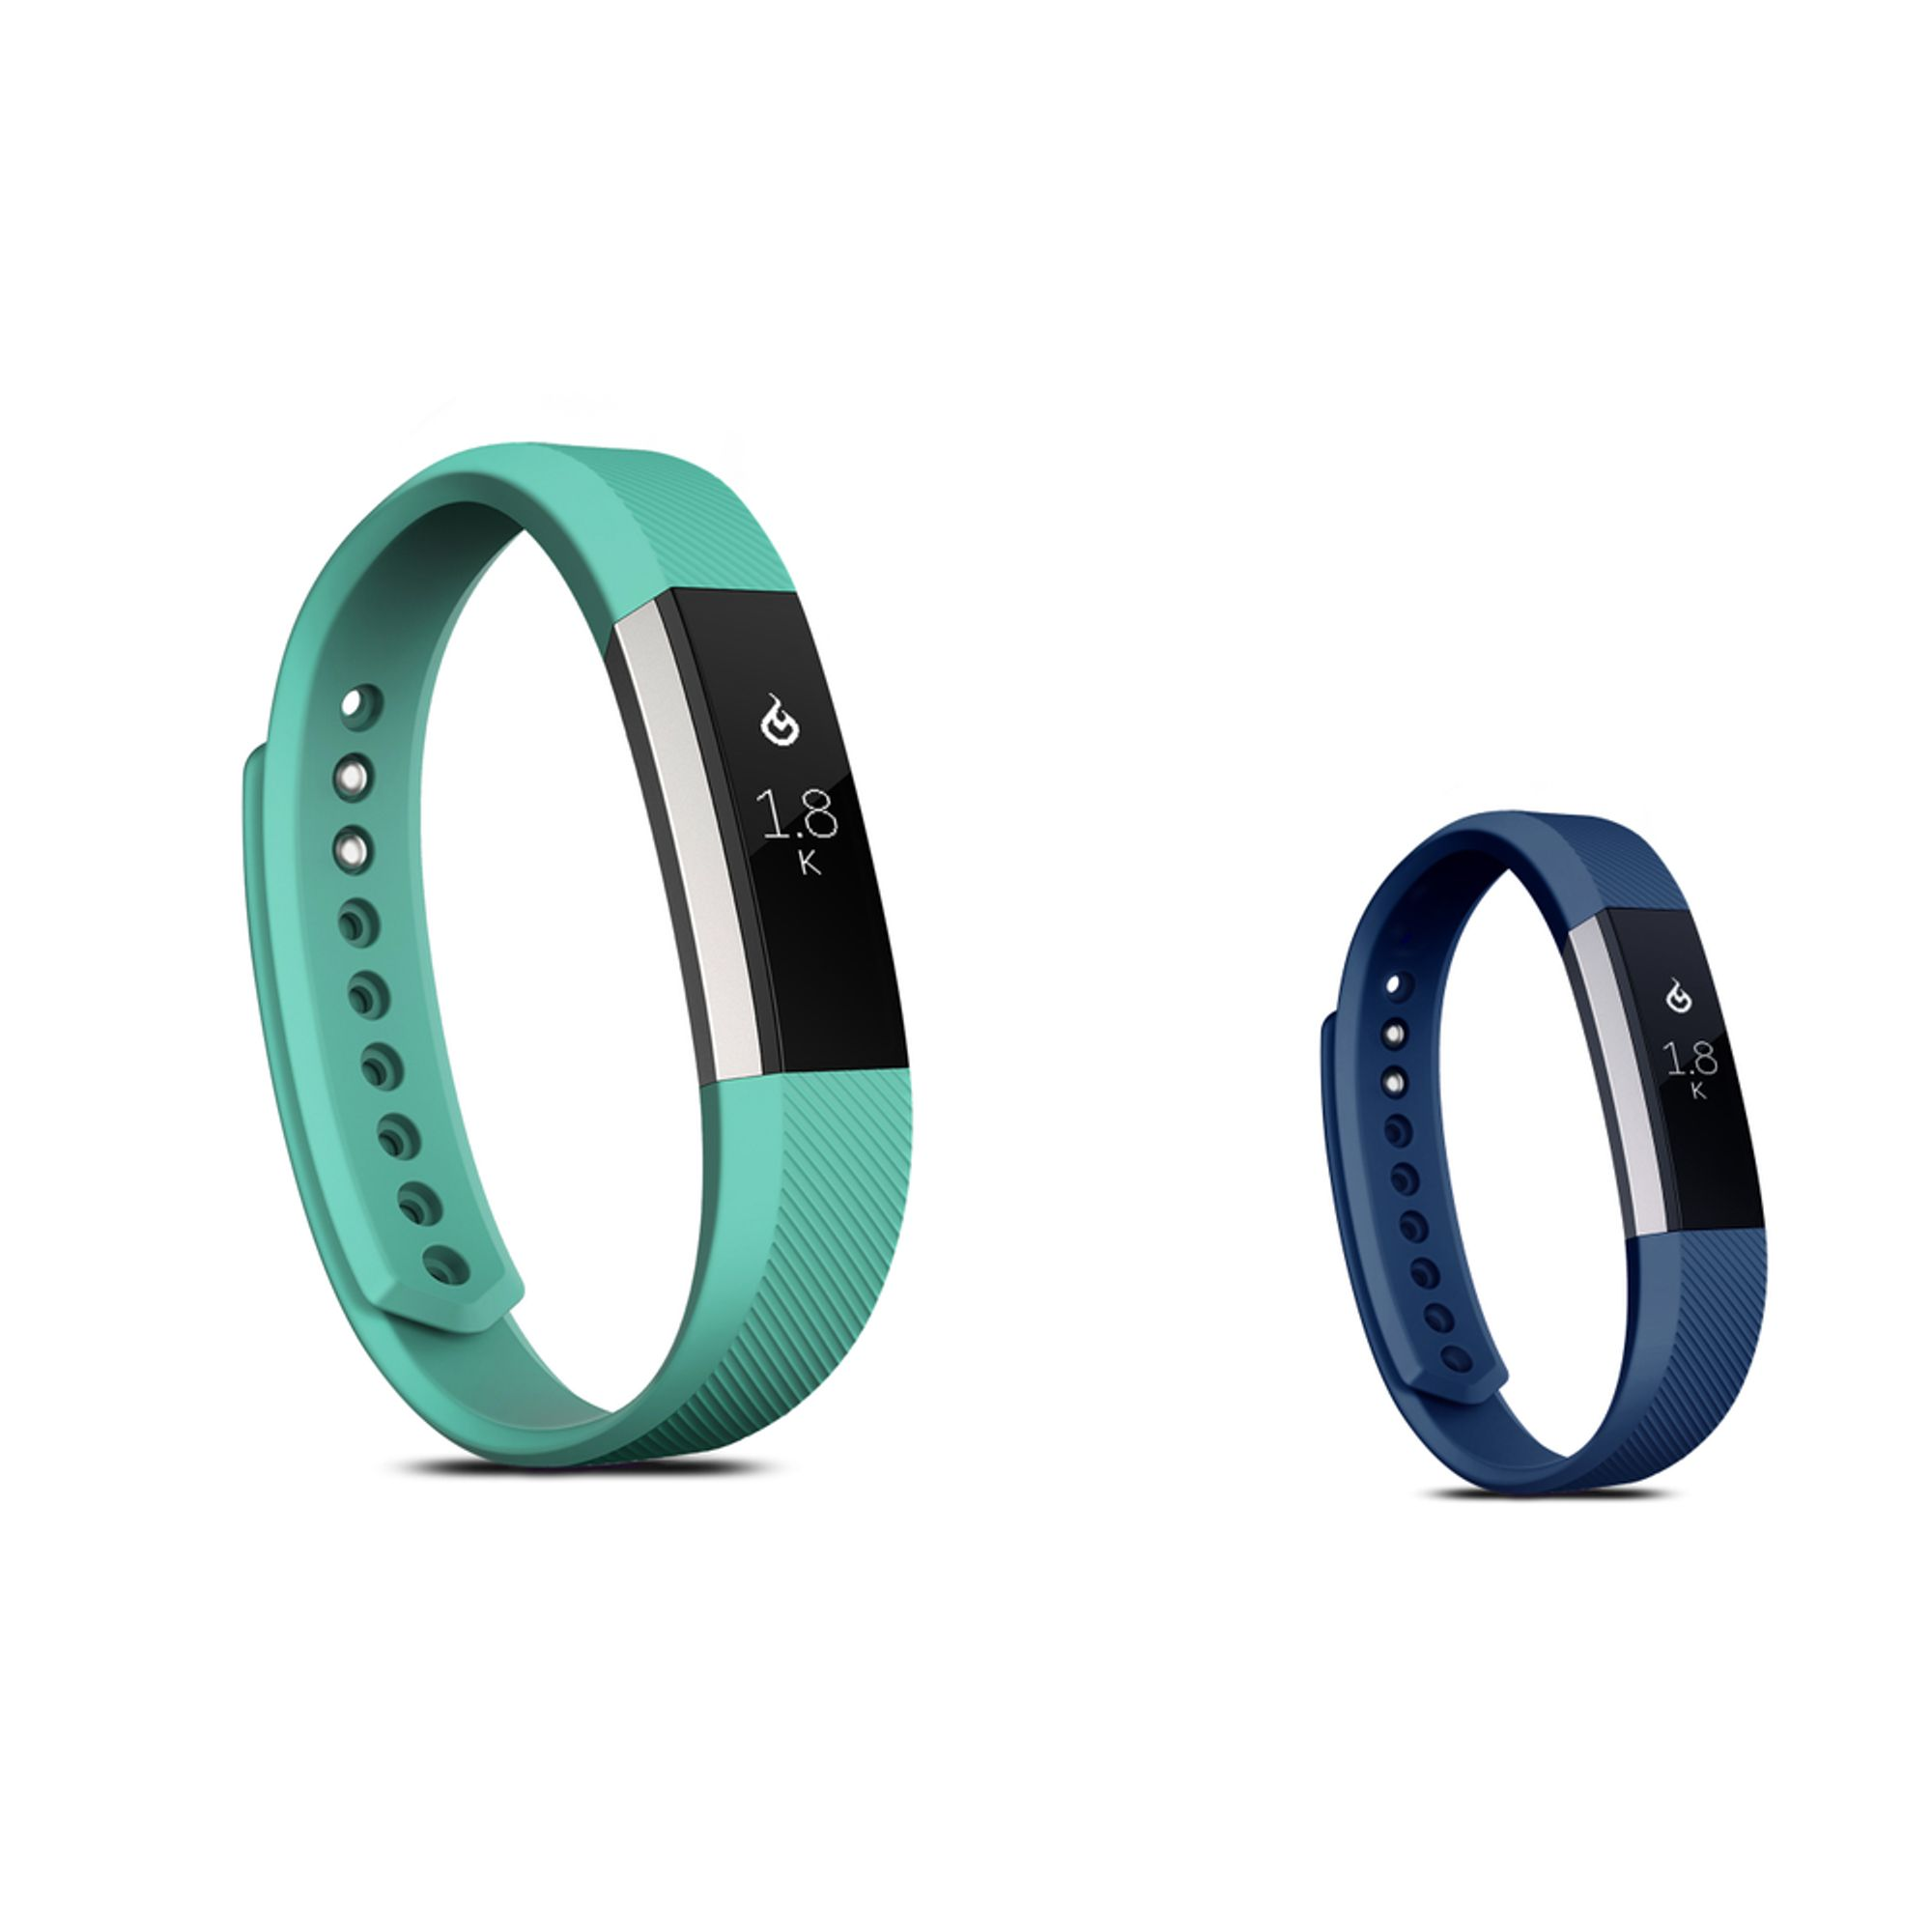 Zodaca Soft TPU Rubber Adjustable Wristbands Watch Band Strap For Fitbit Alta HR / Alta SMALL Size - Mint Green + Navy